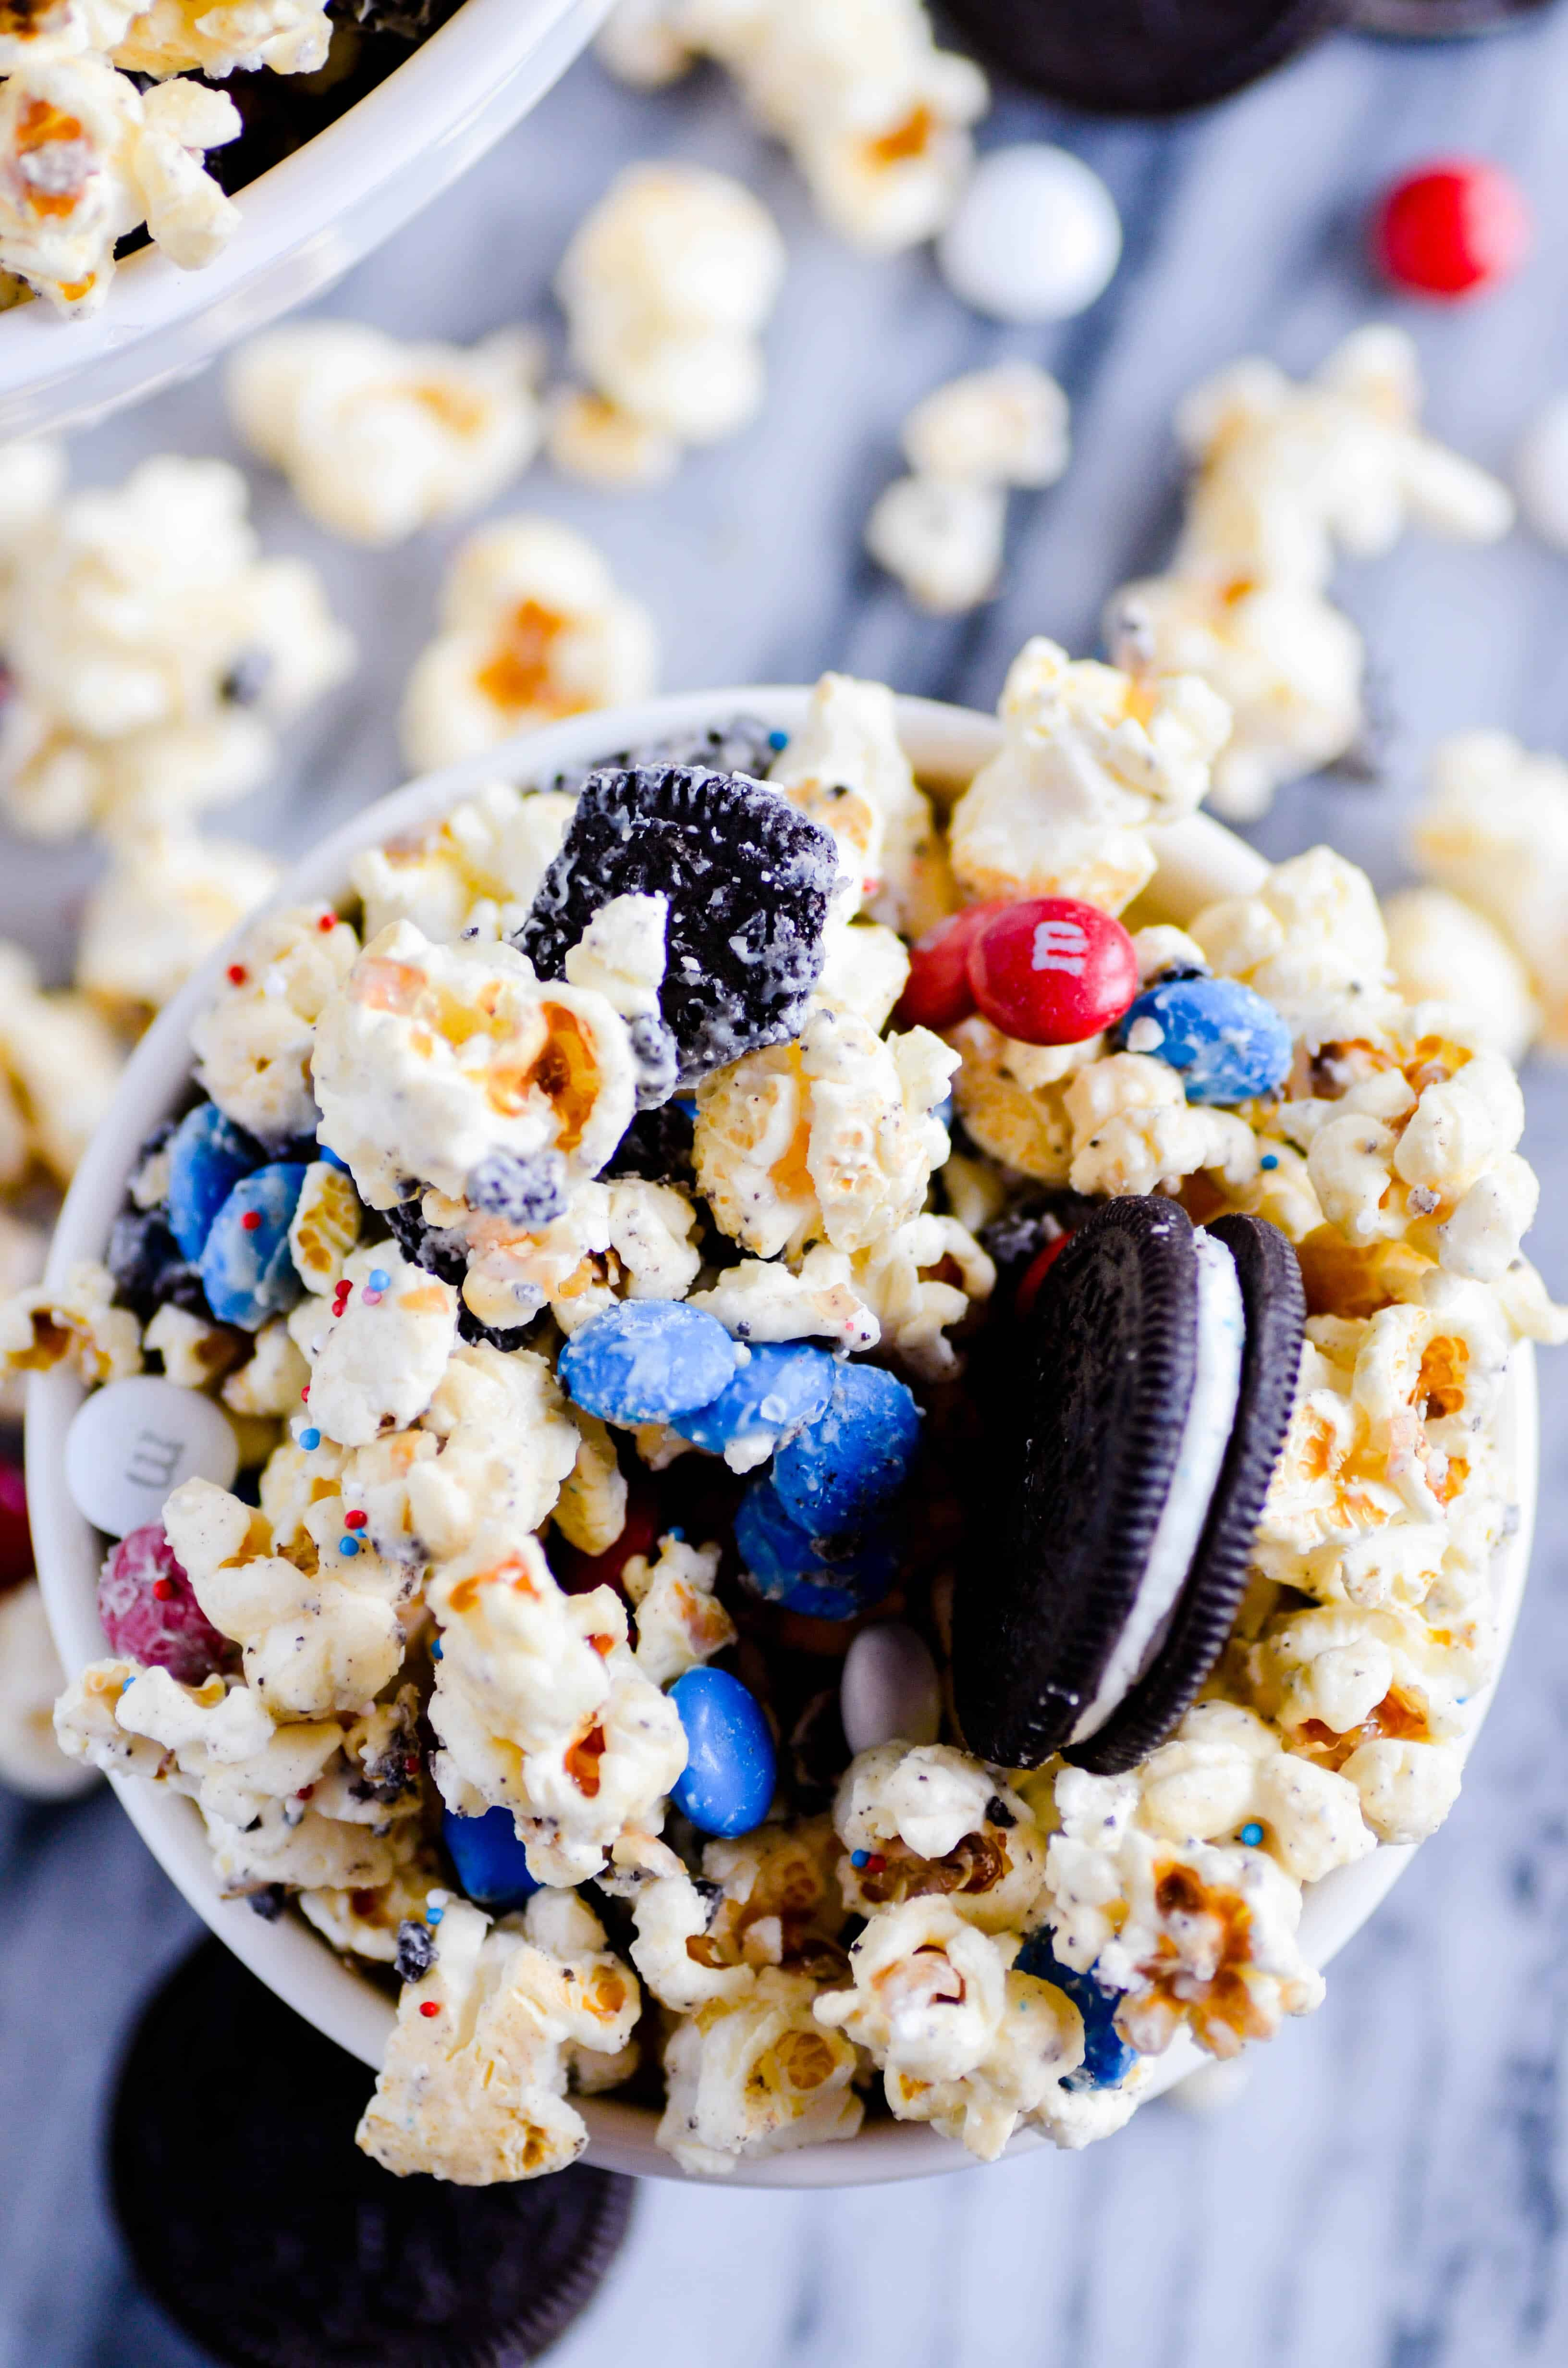 White chocolate coated kettle corn, M&MS, and Firecracker Oreos come together in just a few minutes to make this Firecracker Popcorn Chow.